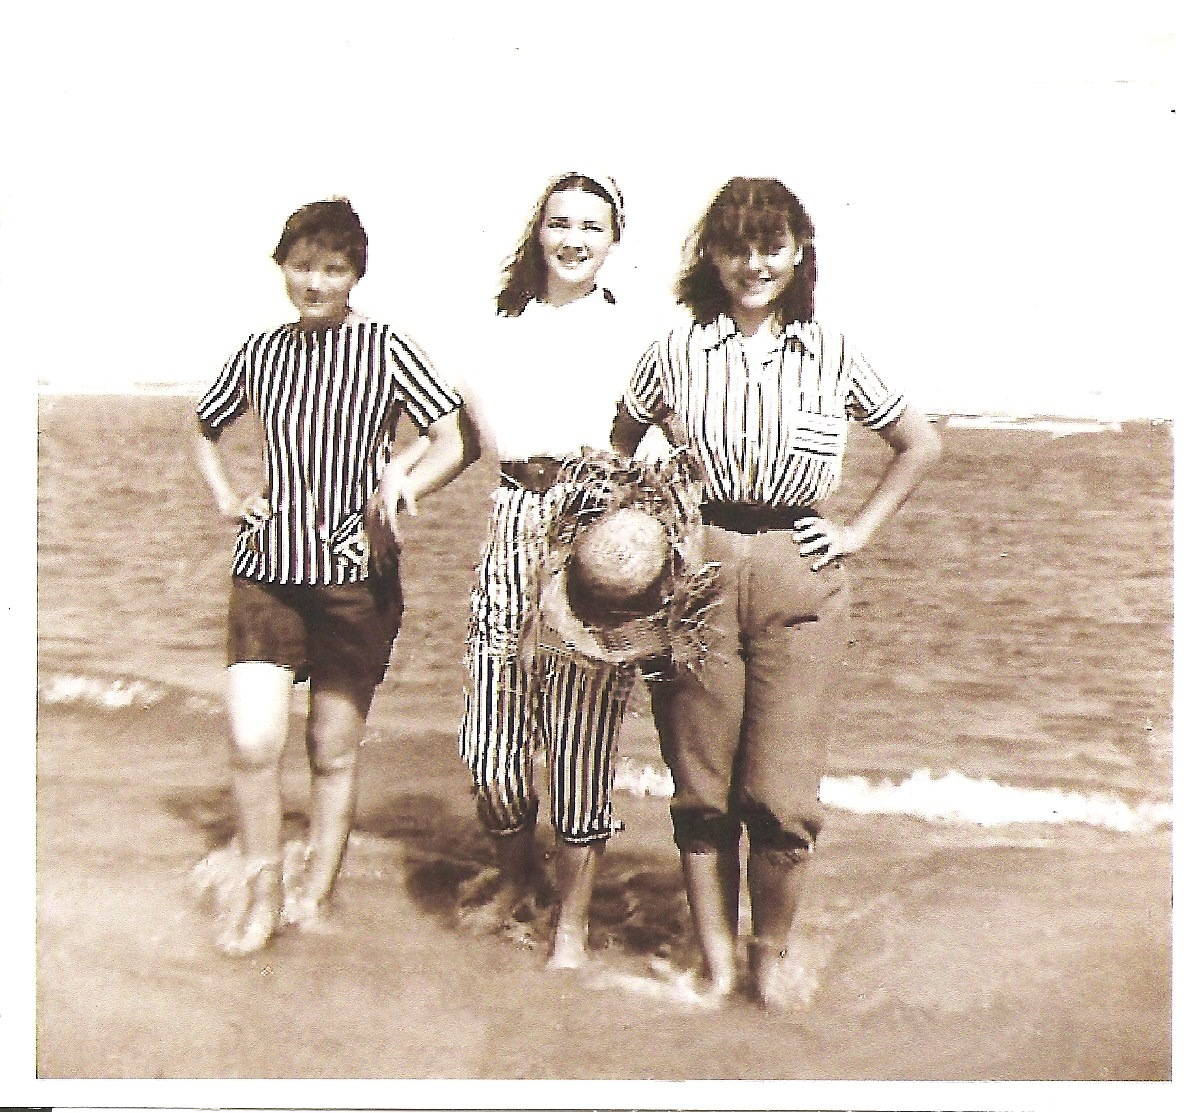 THREE SISTERS BY THE BEACH IN FLORIDA by cheryl.lowery.r